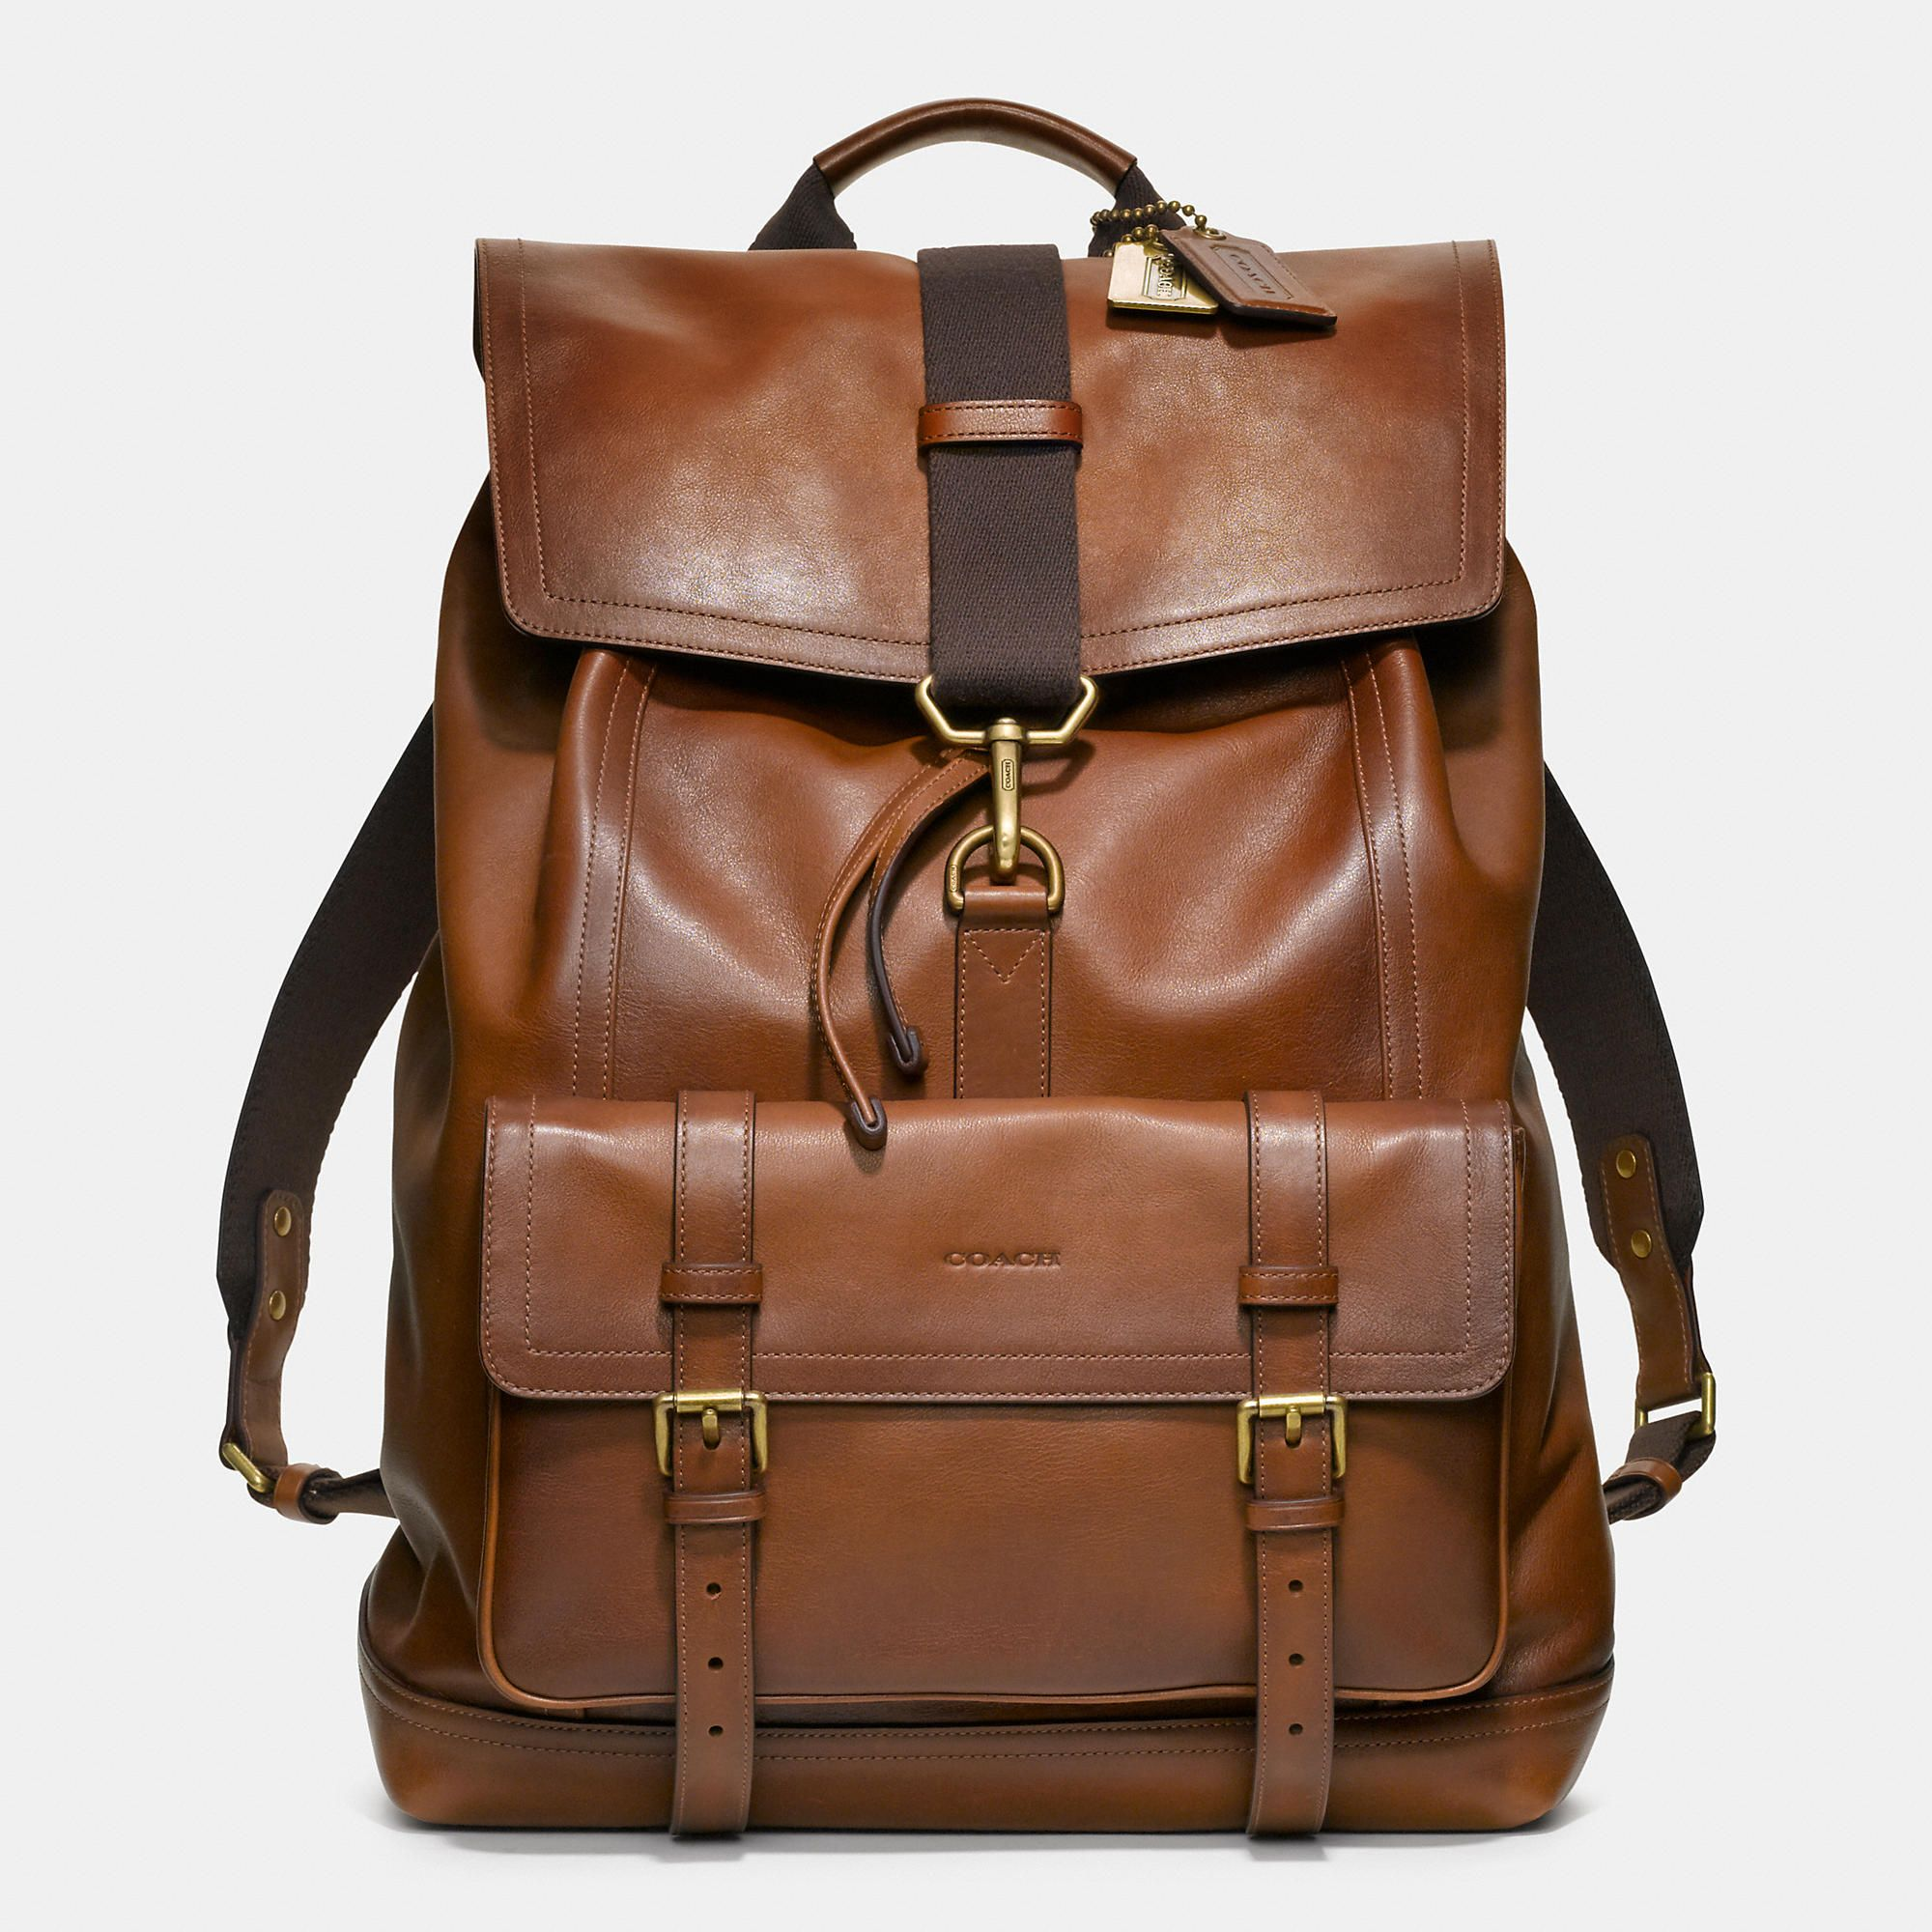 Bleecker Backpack in Leather | Bags, Hurry and Factories